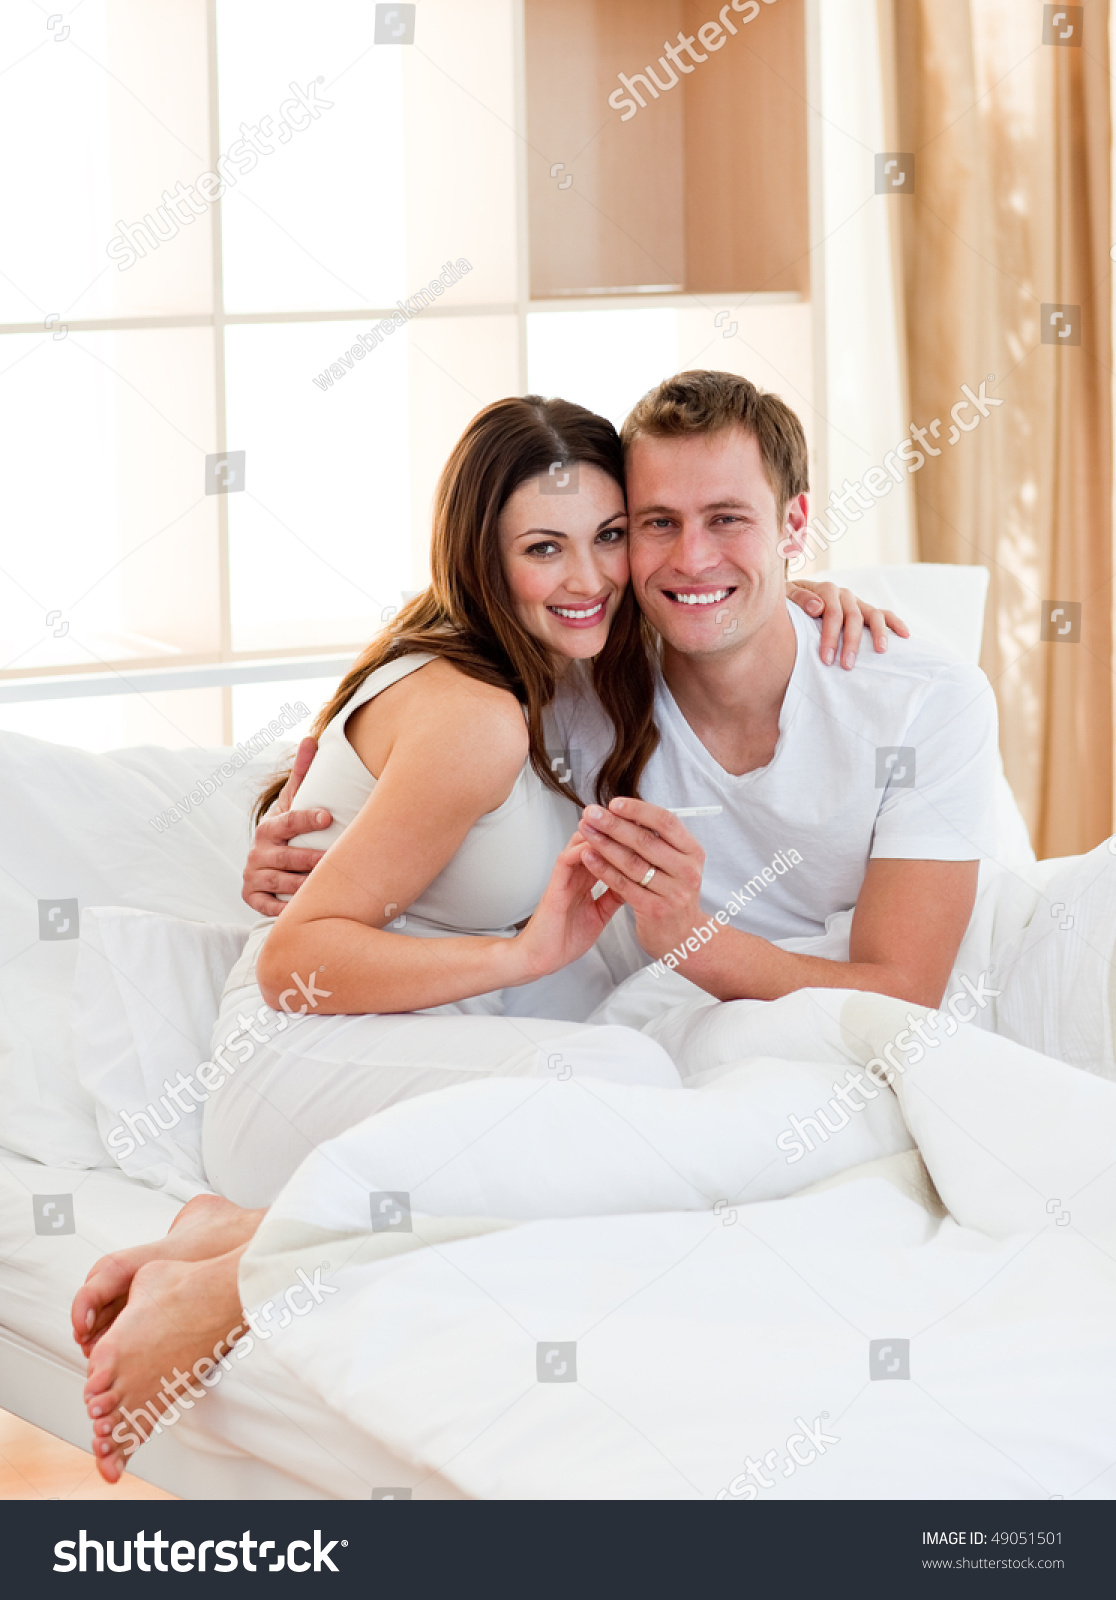 Romantic couple finding out results of a pregnancy test in their bedroom. Romantic Couple Finding Out Results Pregnancy Stock Photo 49051501